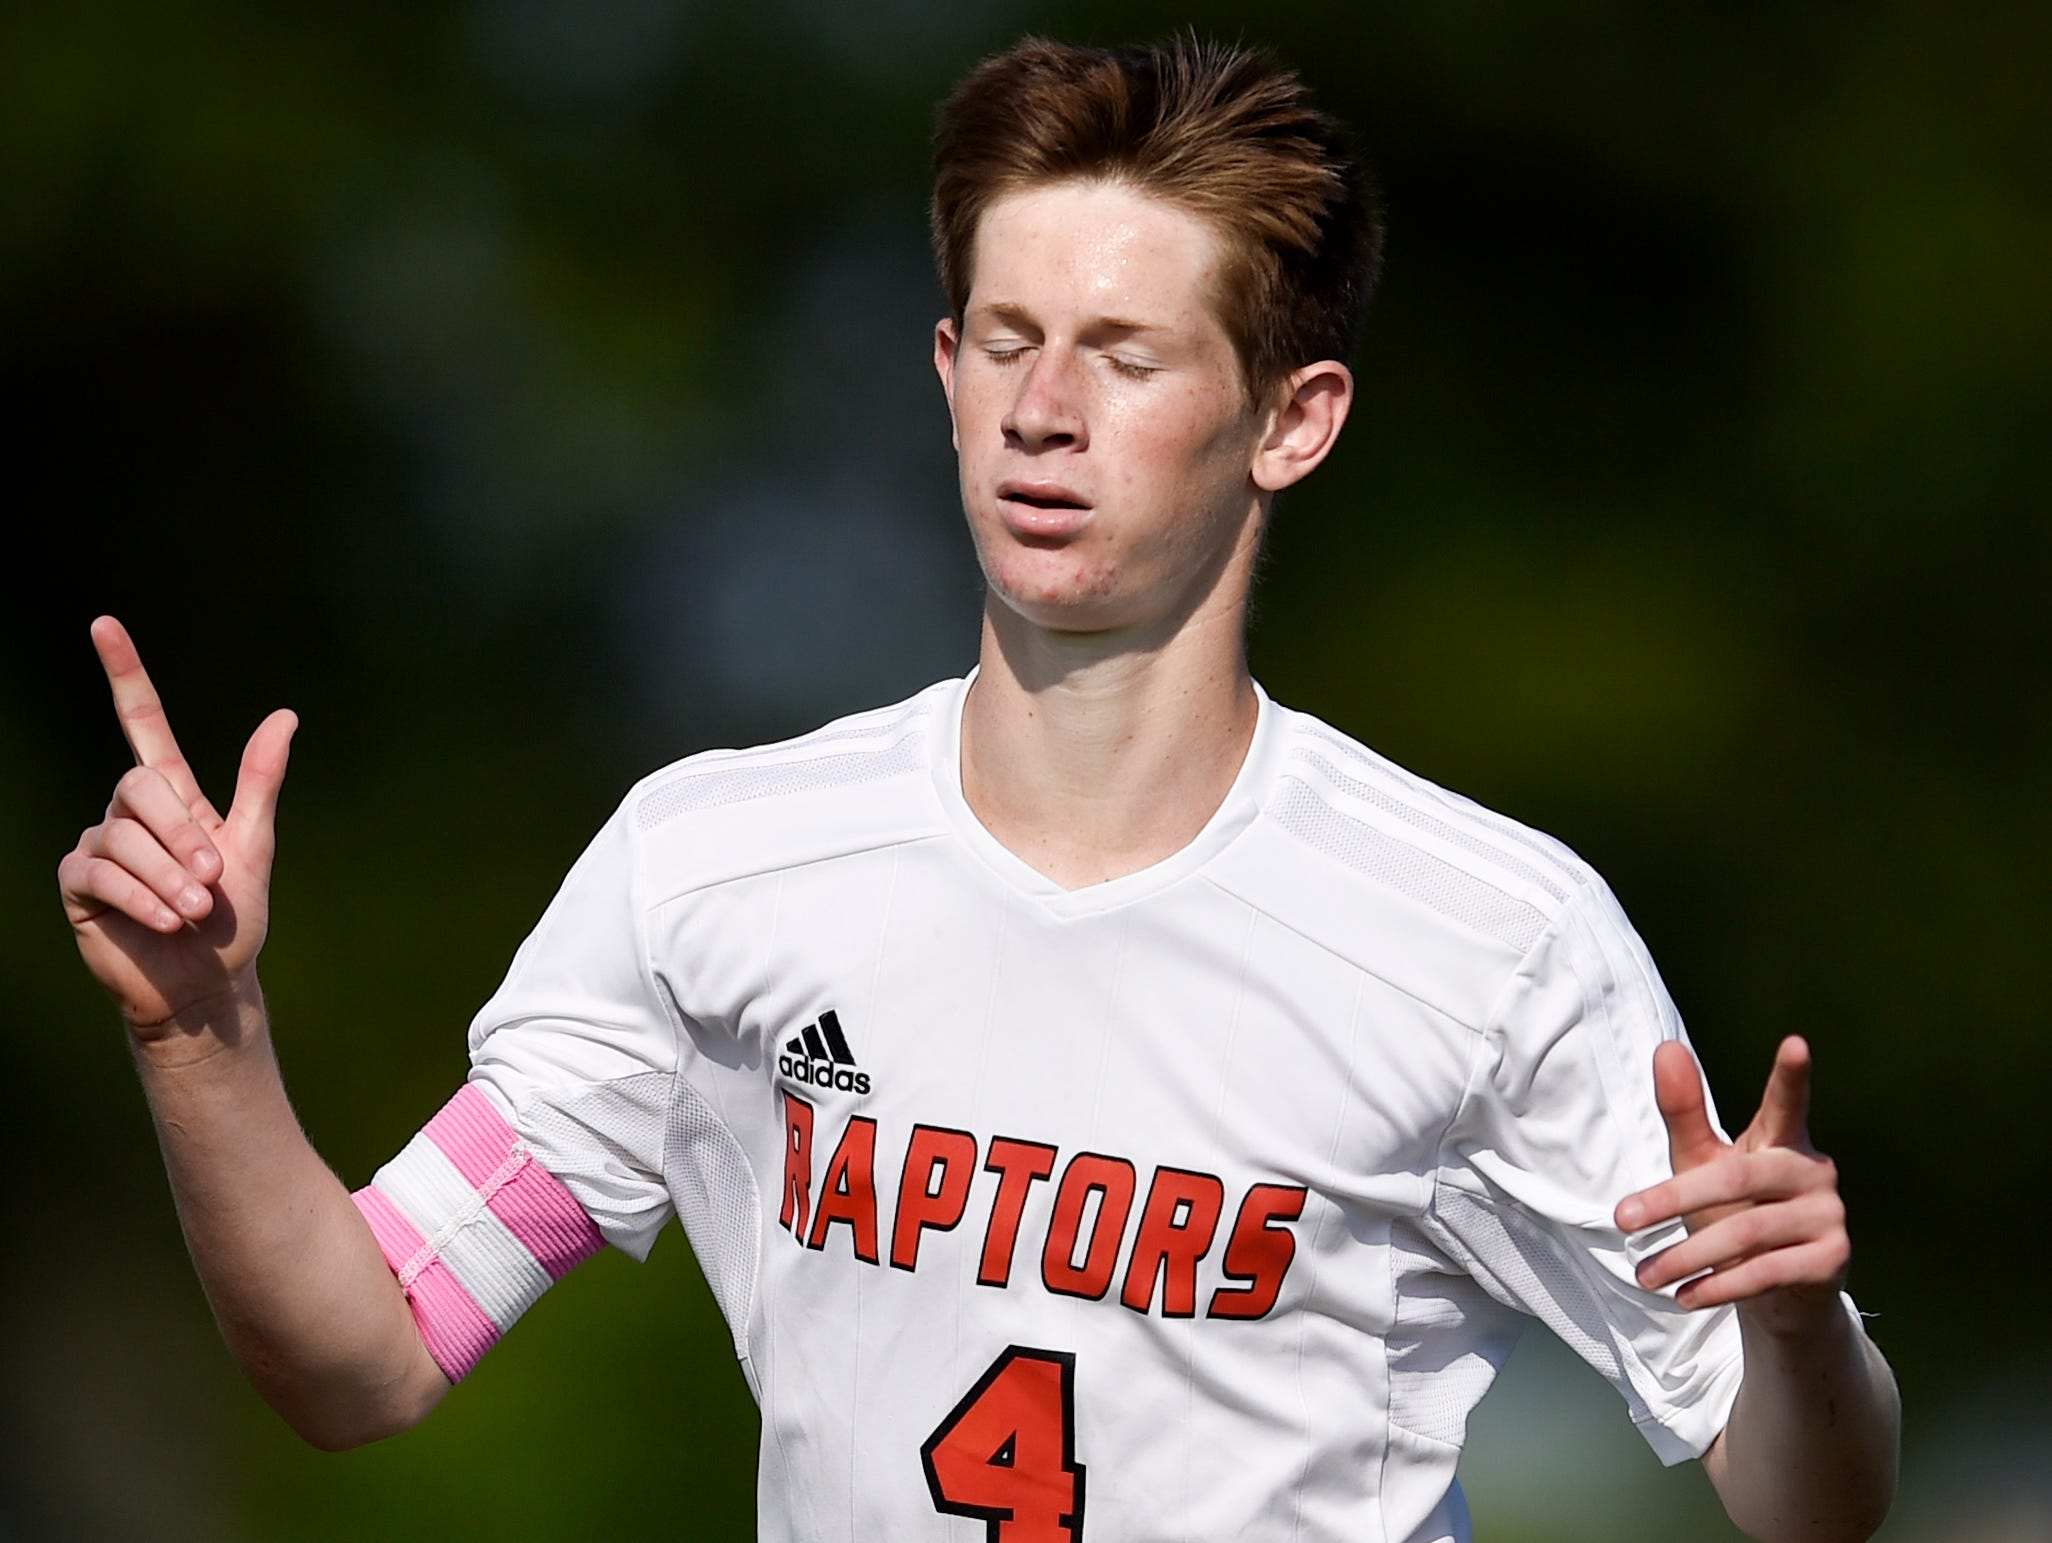 Ravenwood's Jake Hill (4) celebrates scoring against Dobyns-Bennett during the second half at the Siegel Soccer Complex on Tuesday.